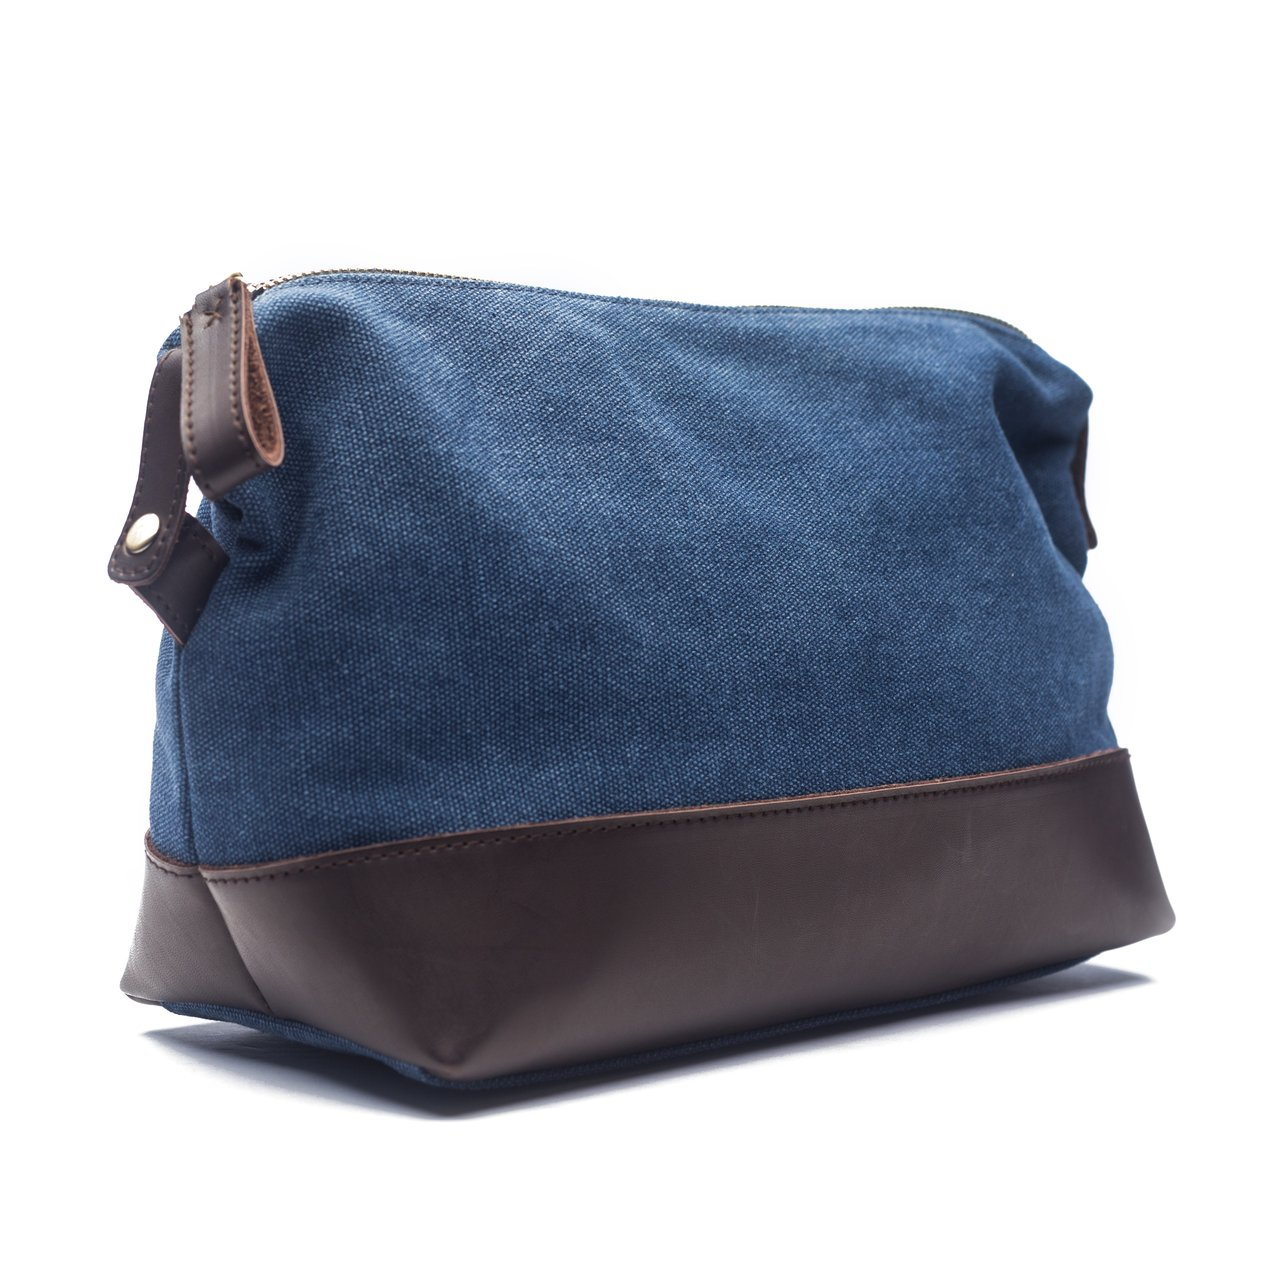 Excursion Toiletry Bag in Denim